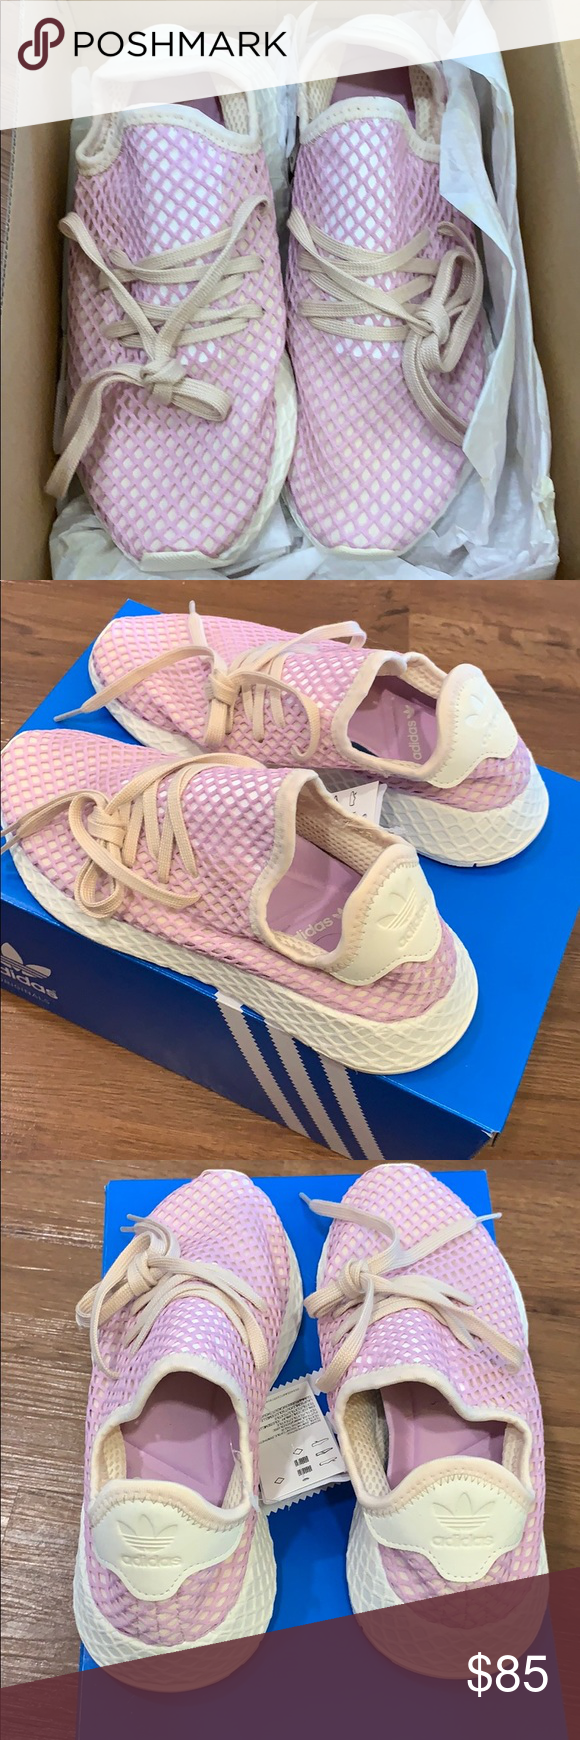 8dae0f2c5 Adidas Deerupt women s running shoes brand new still in box size 6 adidas  Shoes